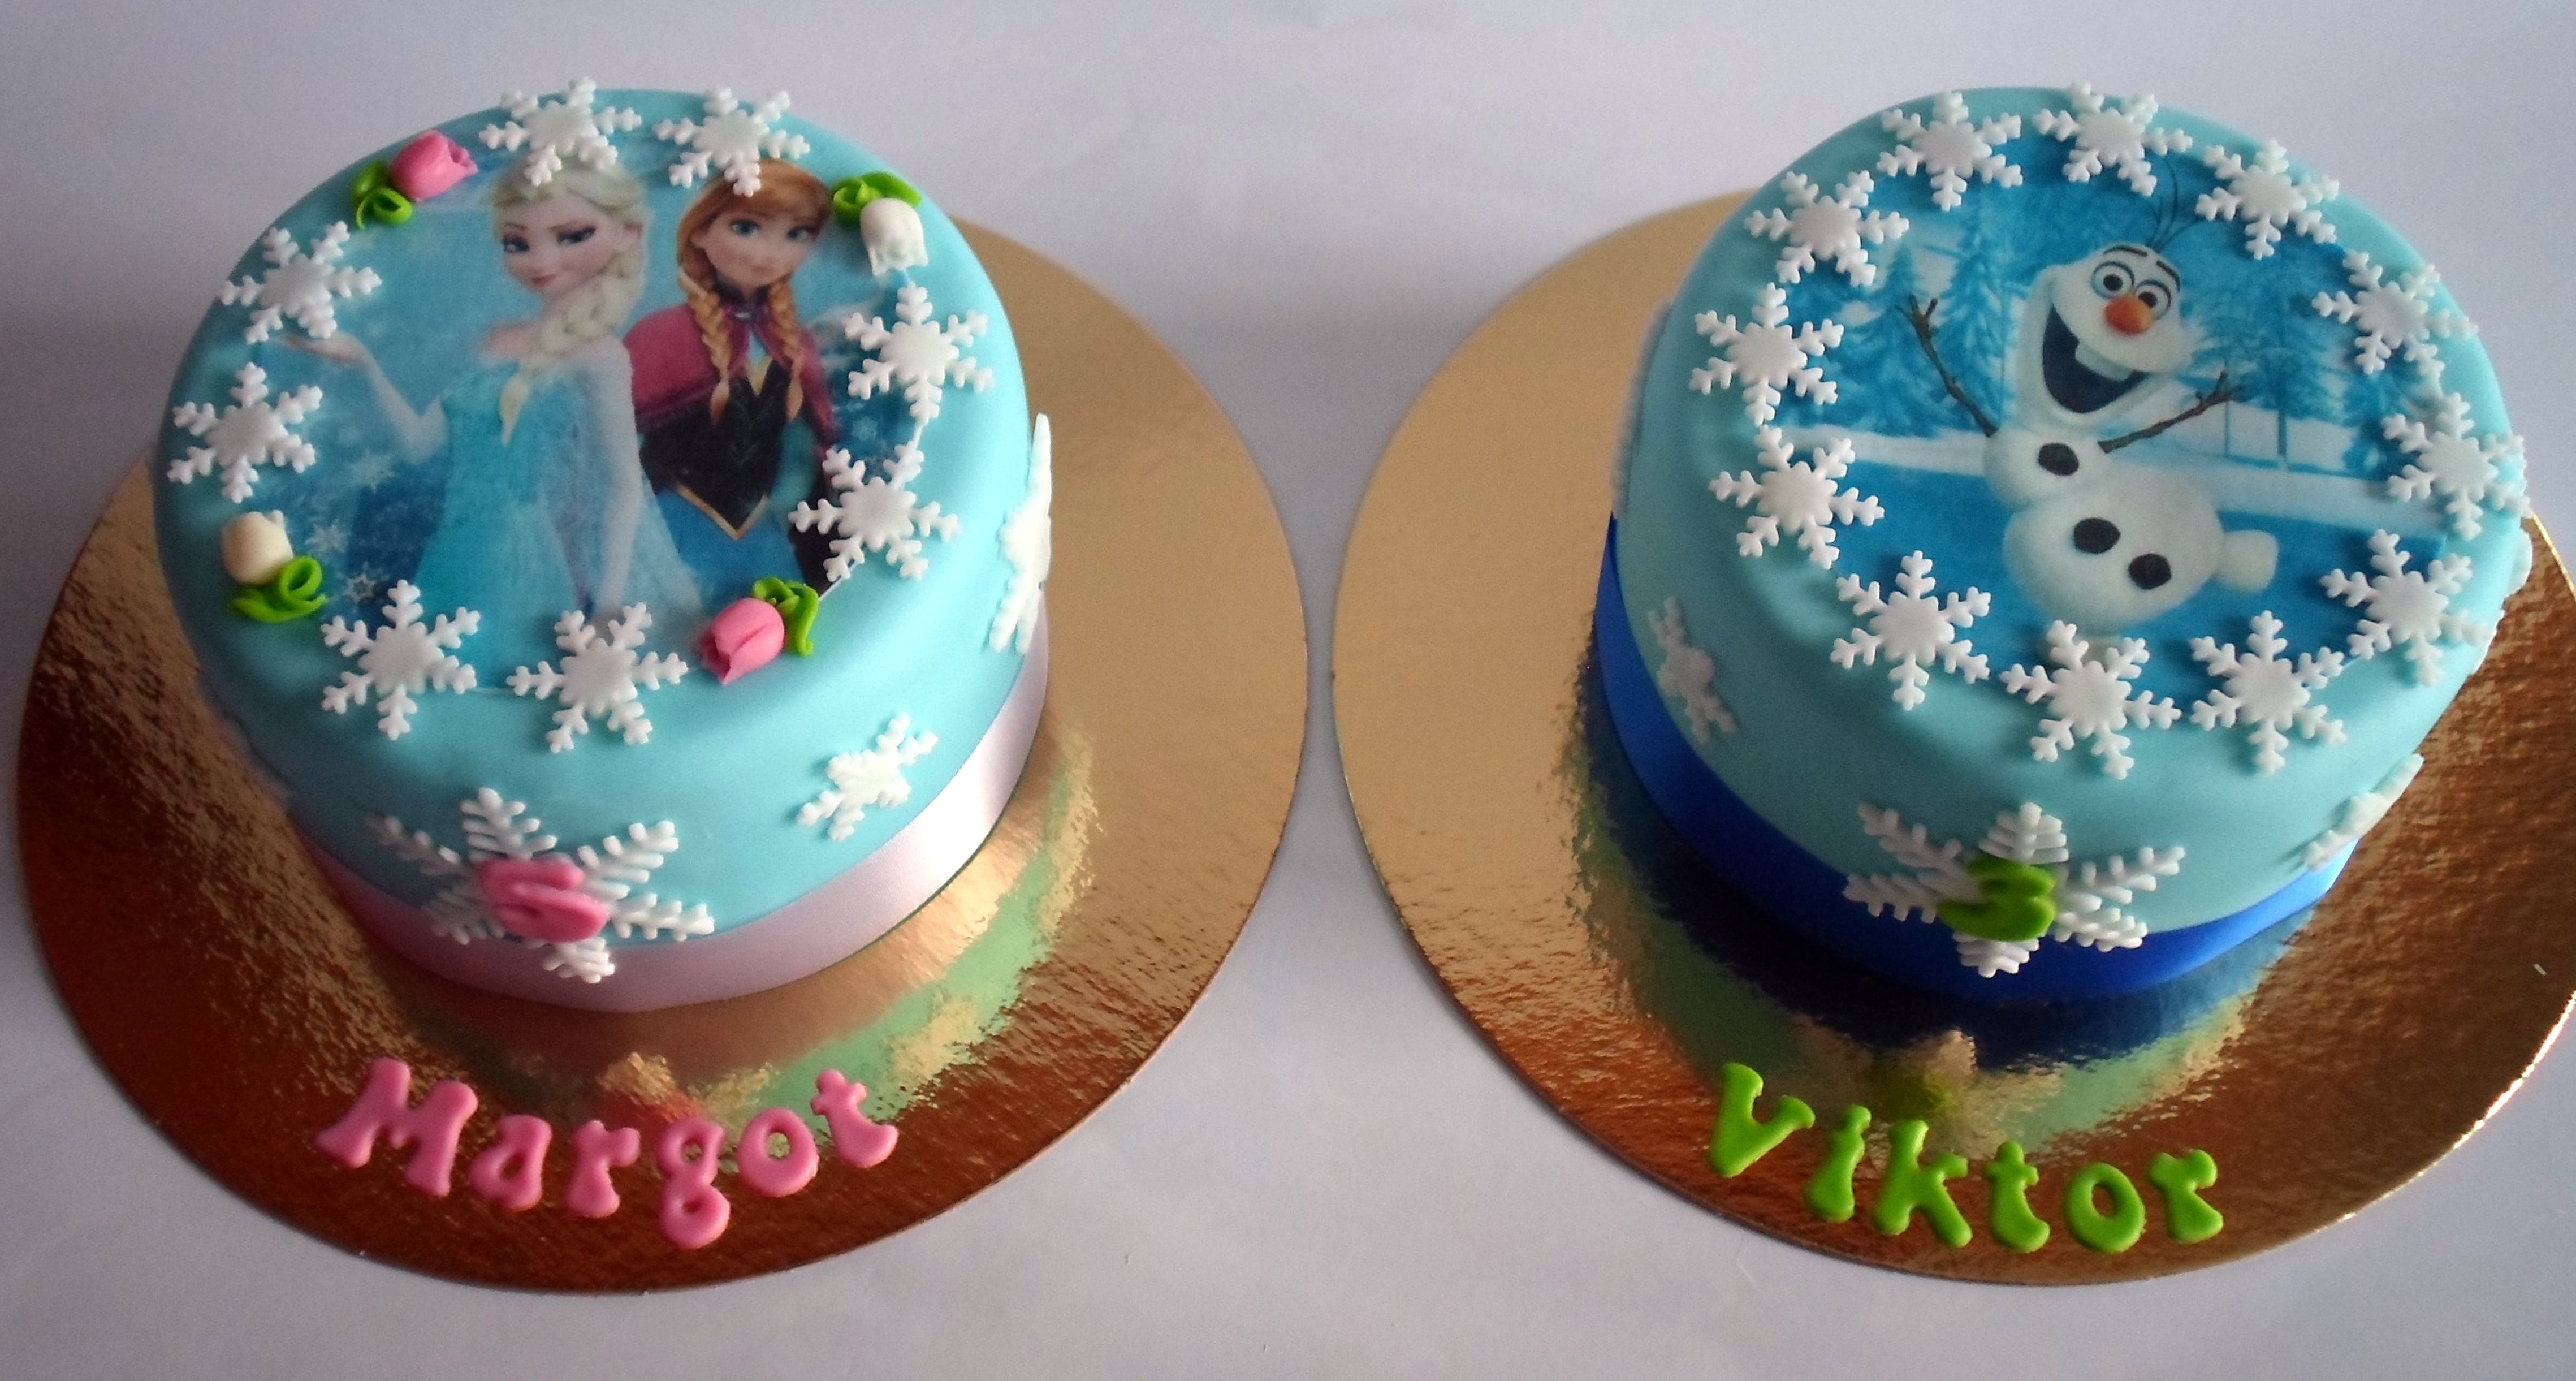 Brother and sister Frozen birthday cakes